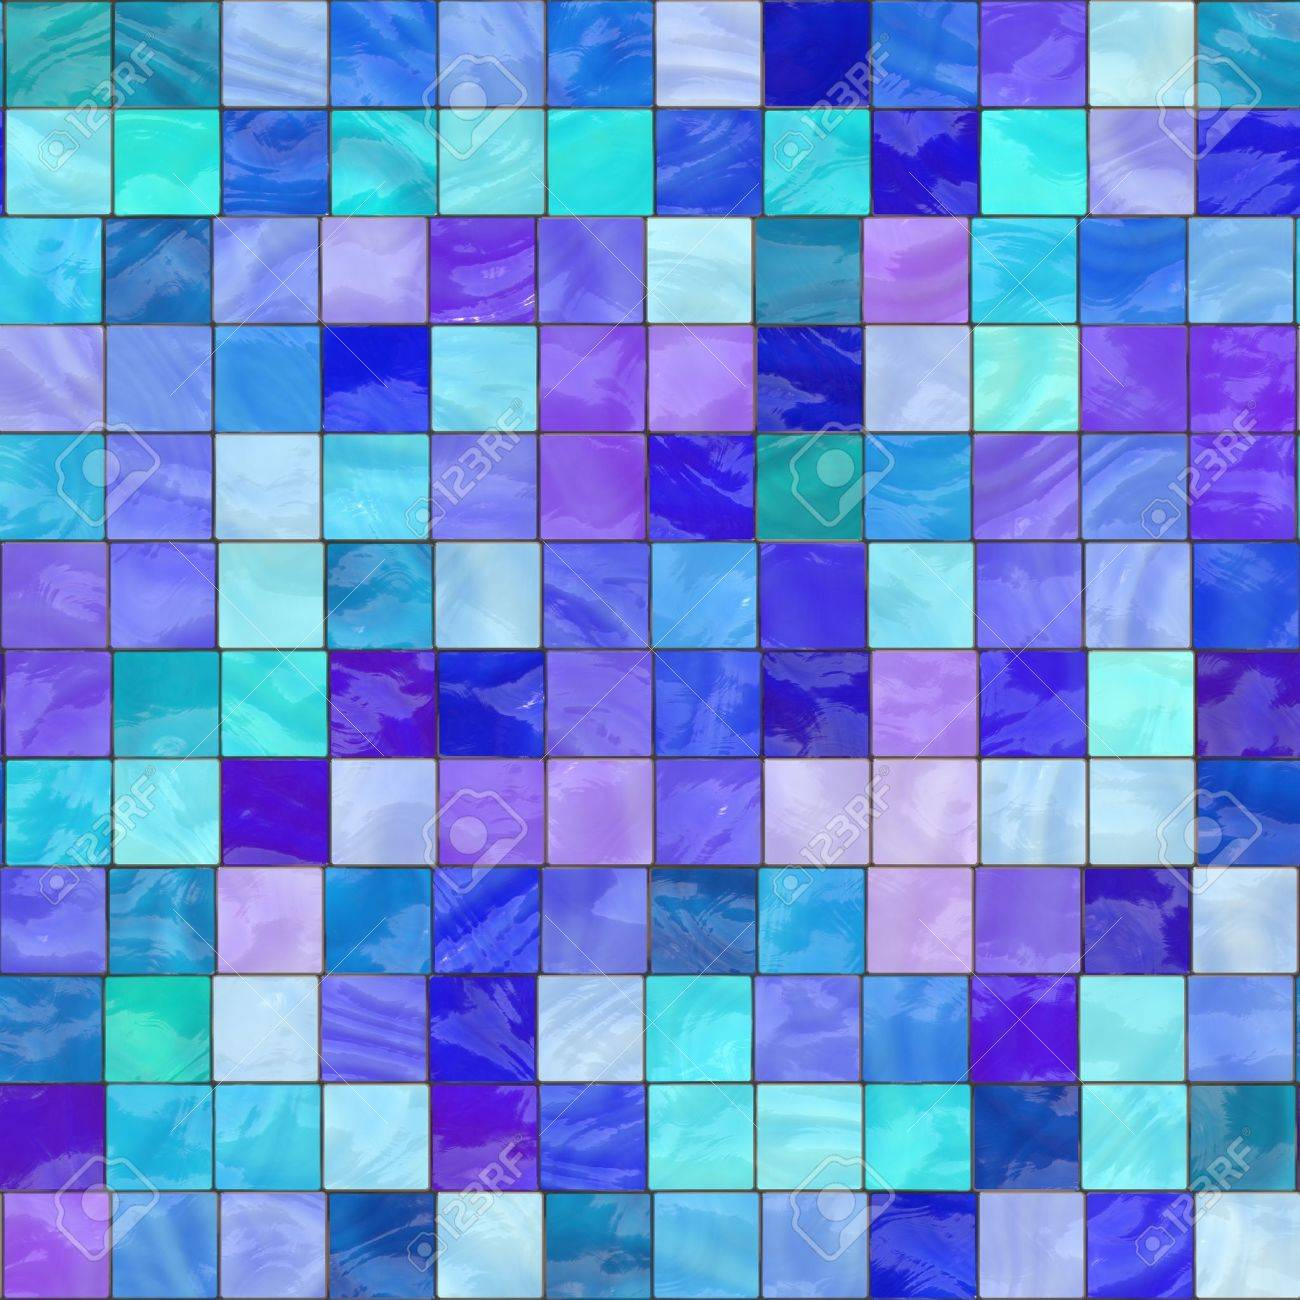 Computer Generated Blue Stained Glass With Teal And Purple. Tiles ...